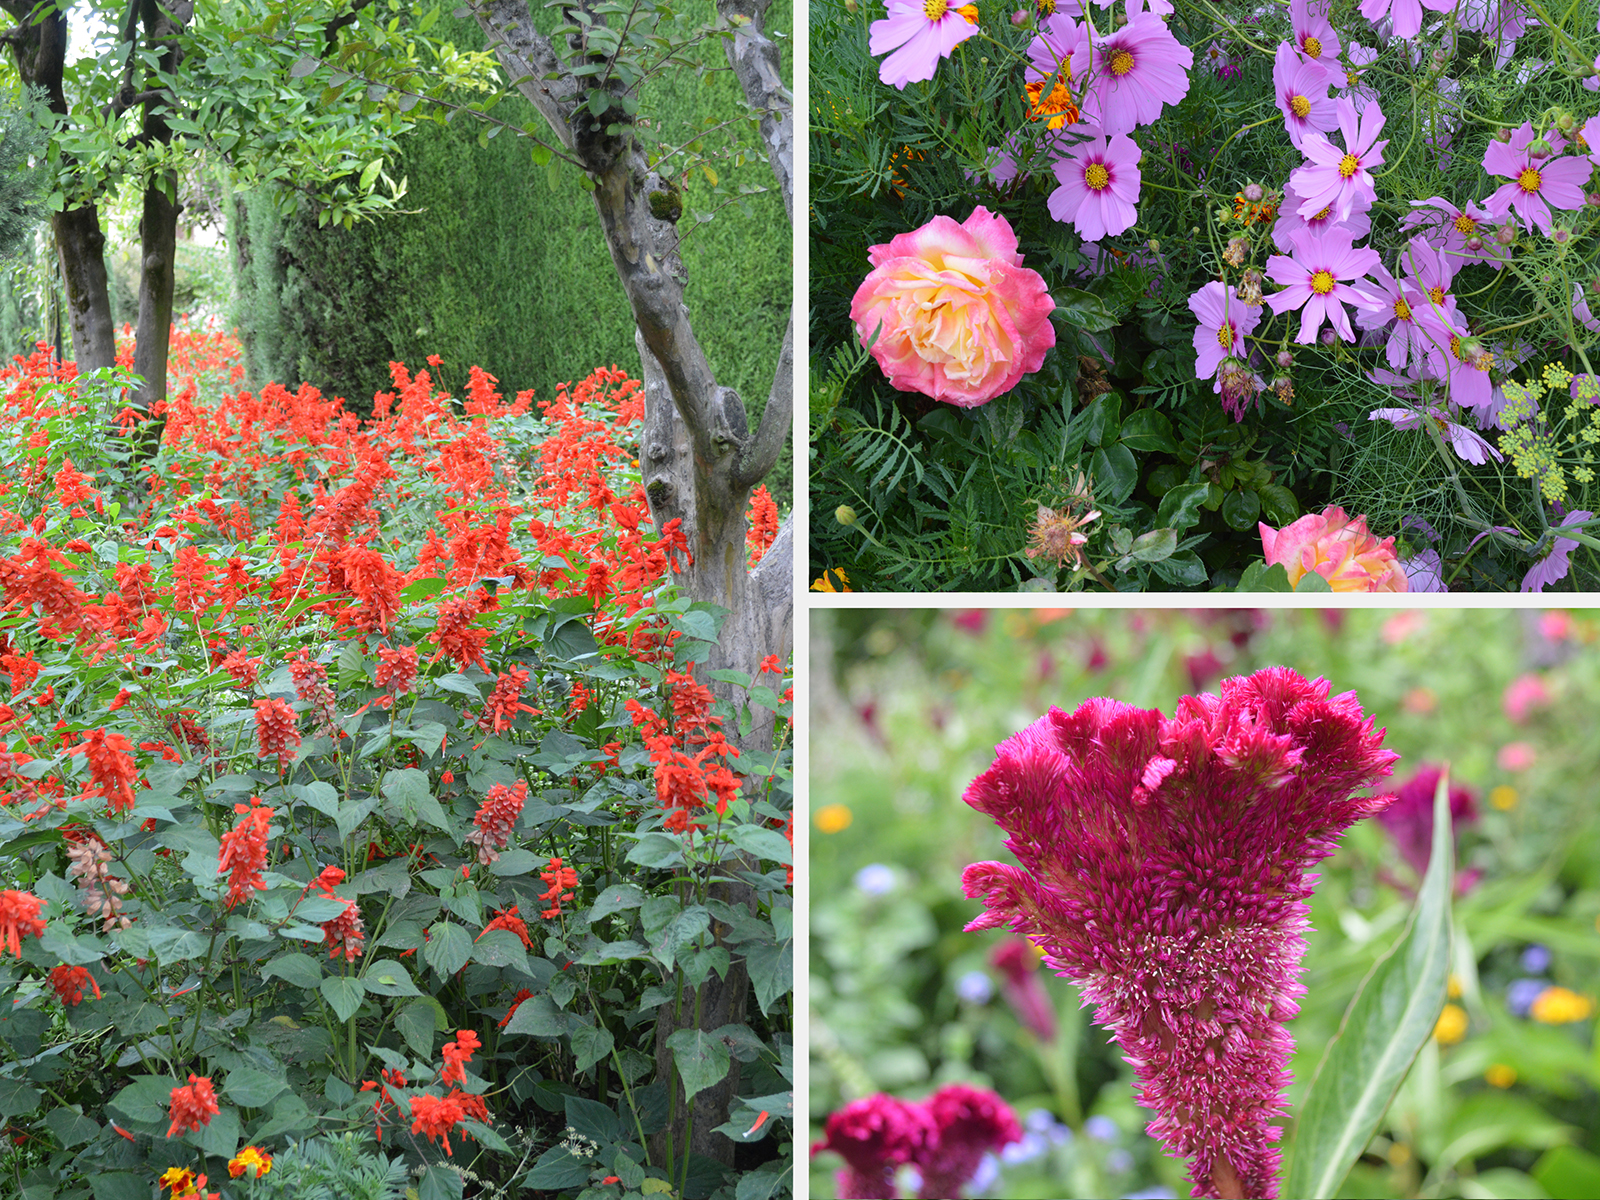 Plants and flowers of the Generalife gardens